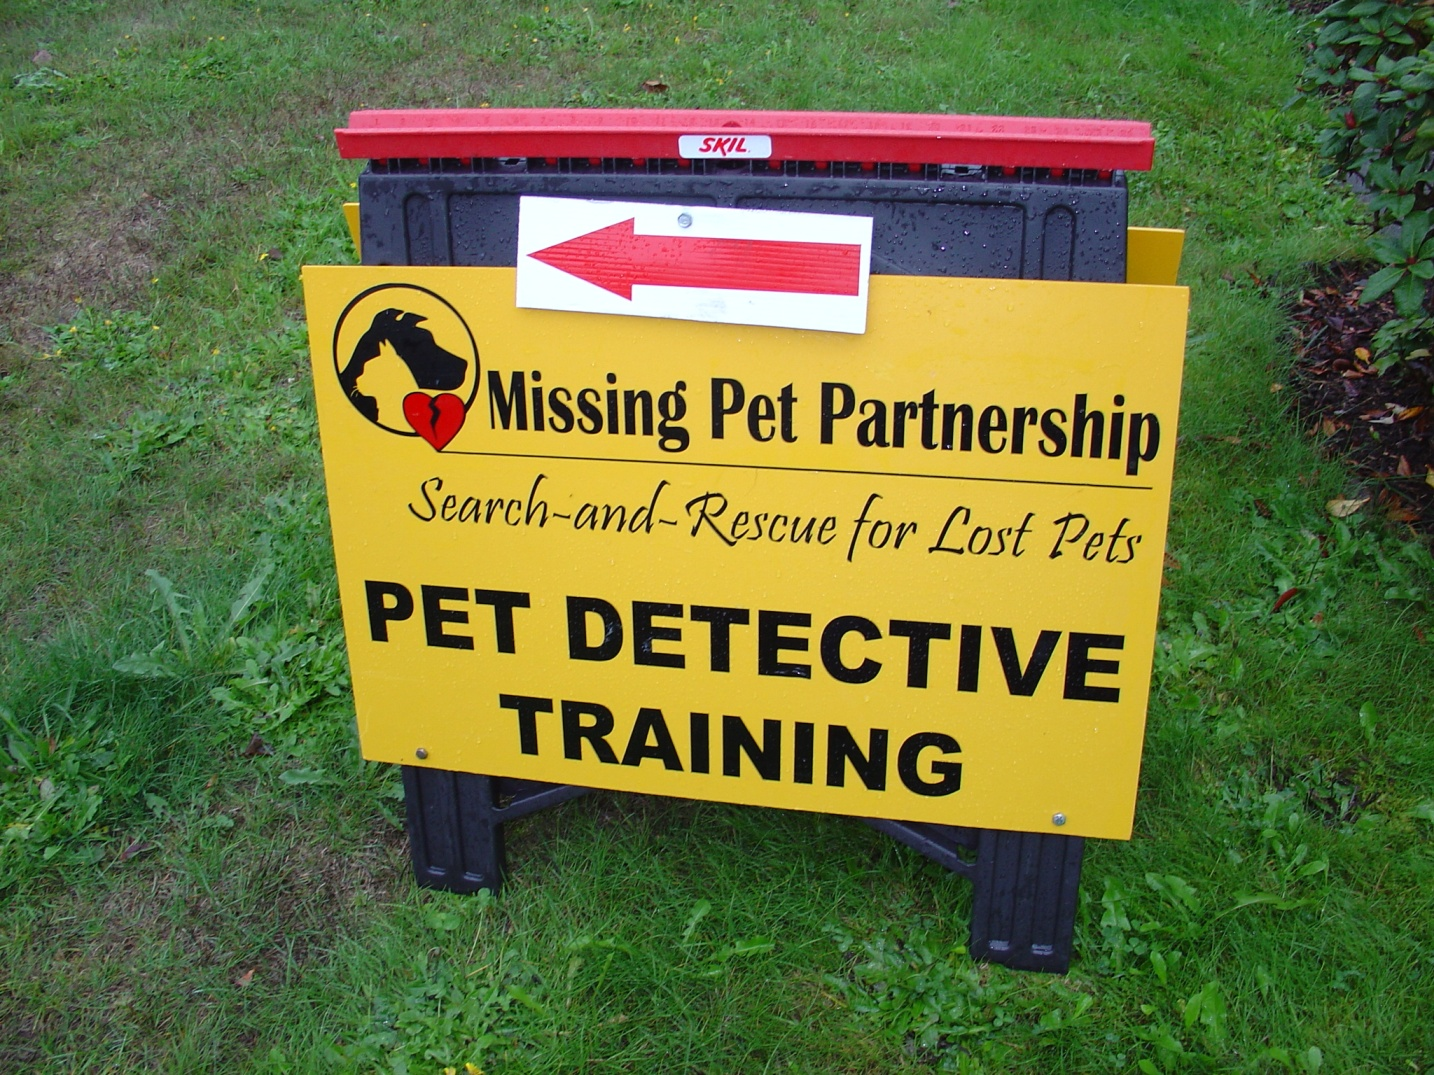 Let Us Help You Form A PET DETECTIVE TEAM In YOUR Community!